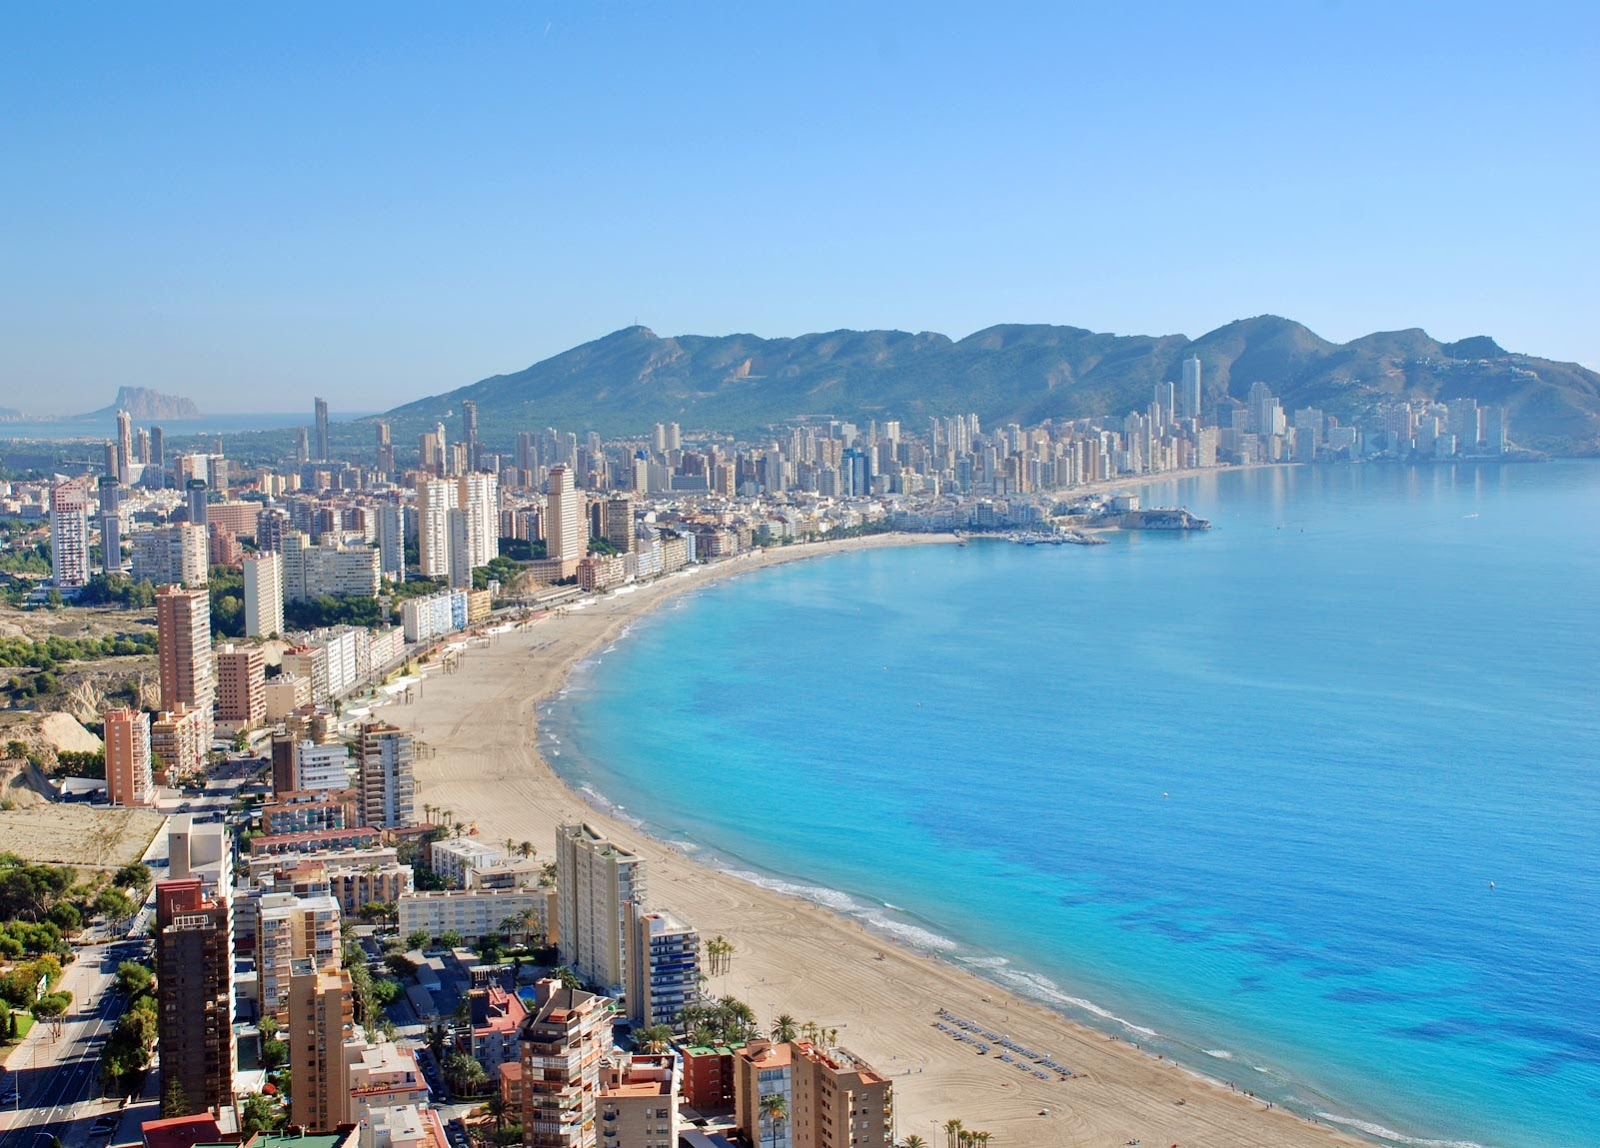 Levante beach in Benidorm, Valencia